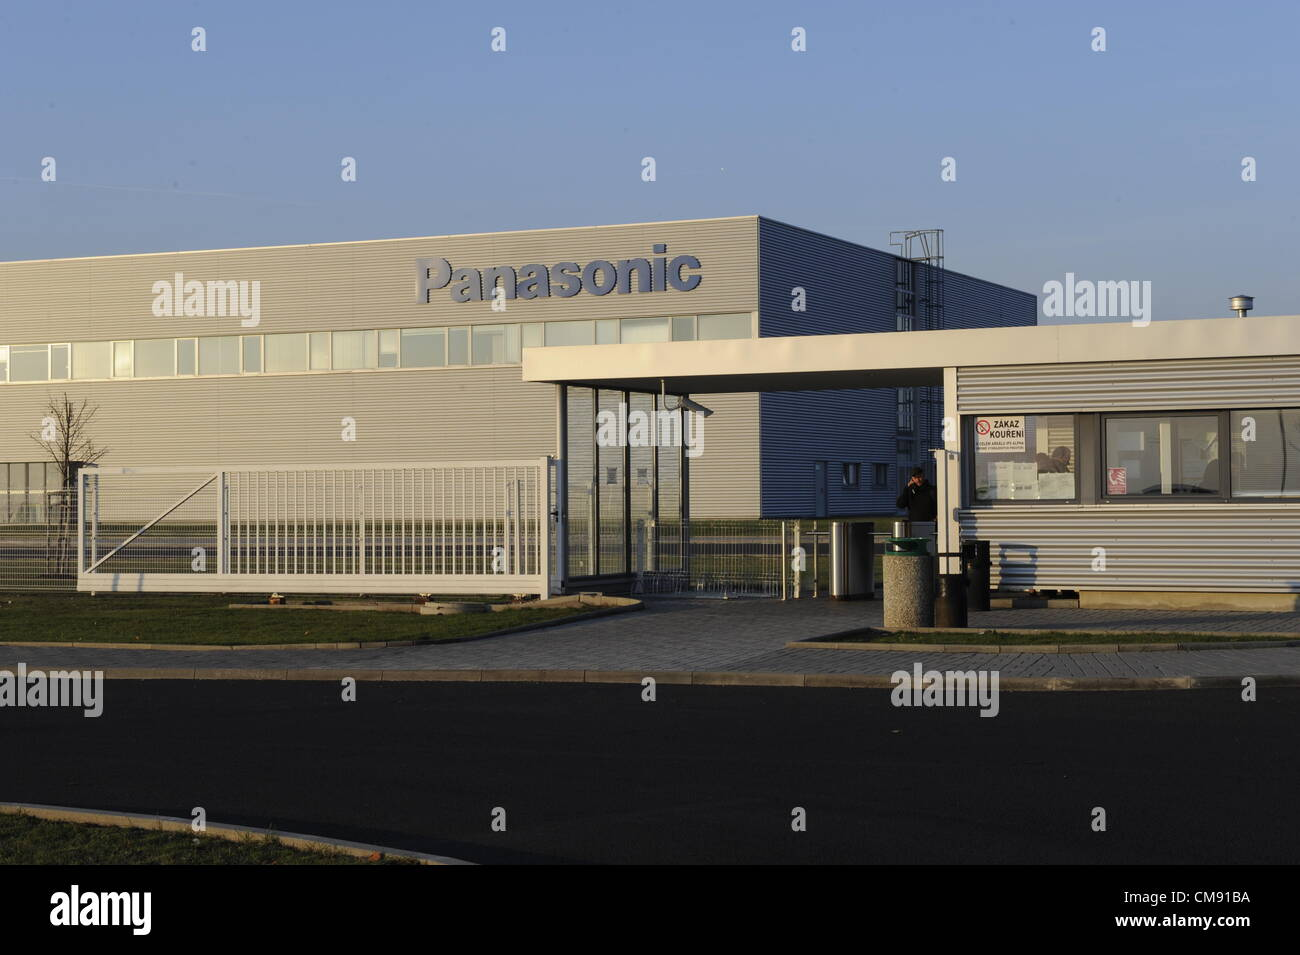 Panasonic company ends with the production in the Triangle industrial zone near Zatec. Panasonic company confirmed Stock Photo